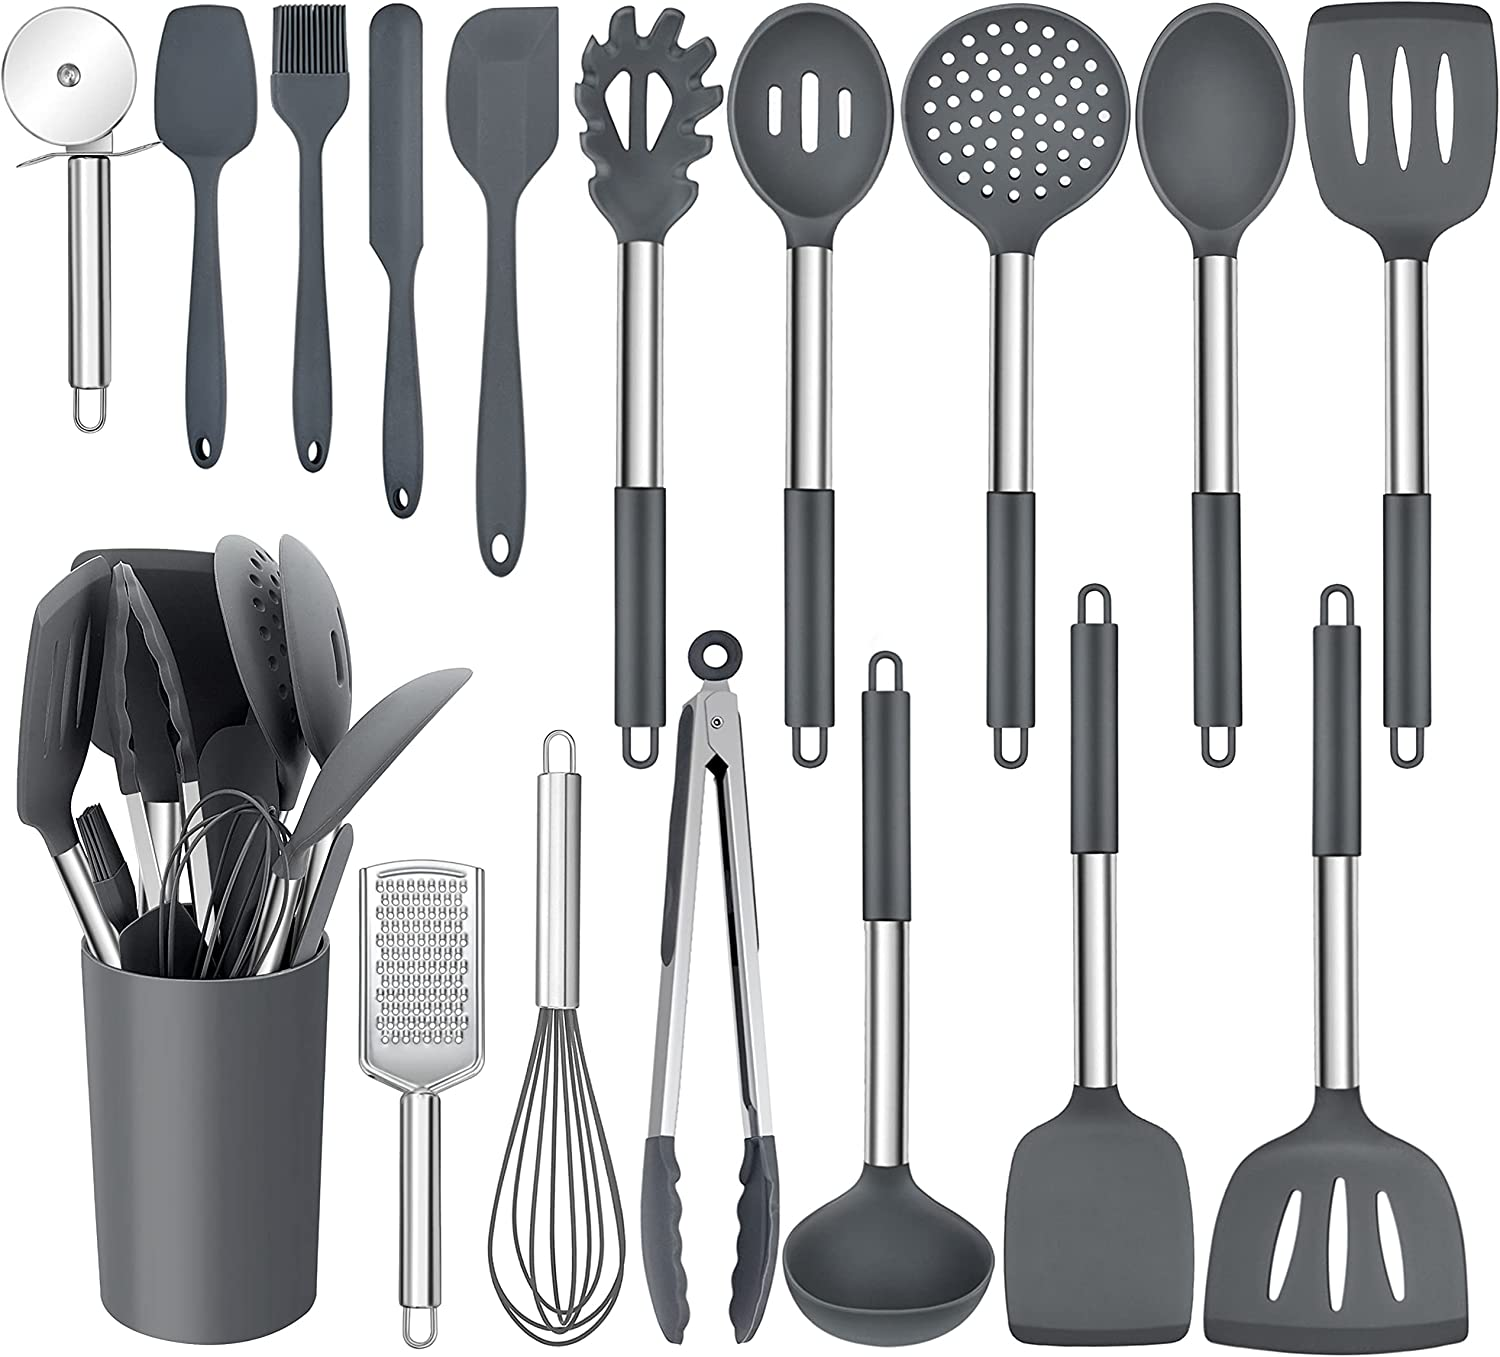 Fresno Mall Homikit 17 Pieces Silicone Kitchen Gray Utensils Holder Co with Clearance SALE Limited time